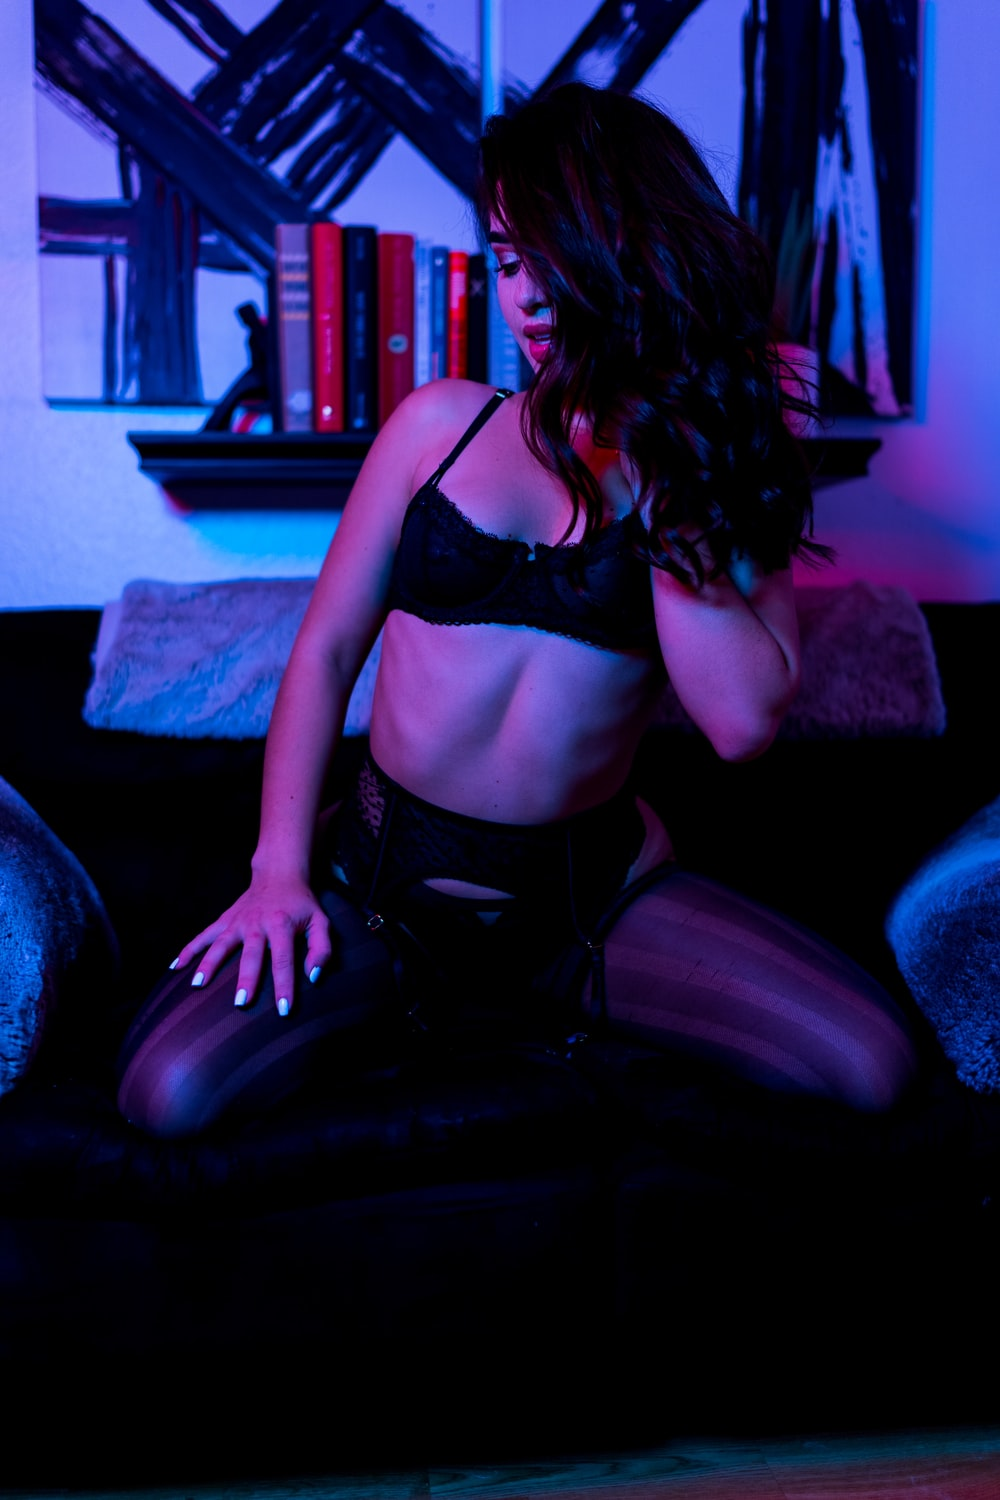 woman in black brassiere and panty kneeling on black leather sofa